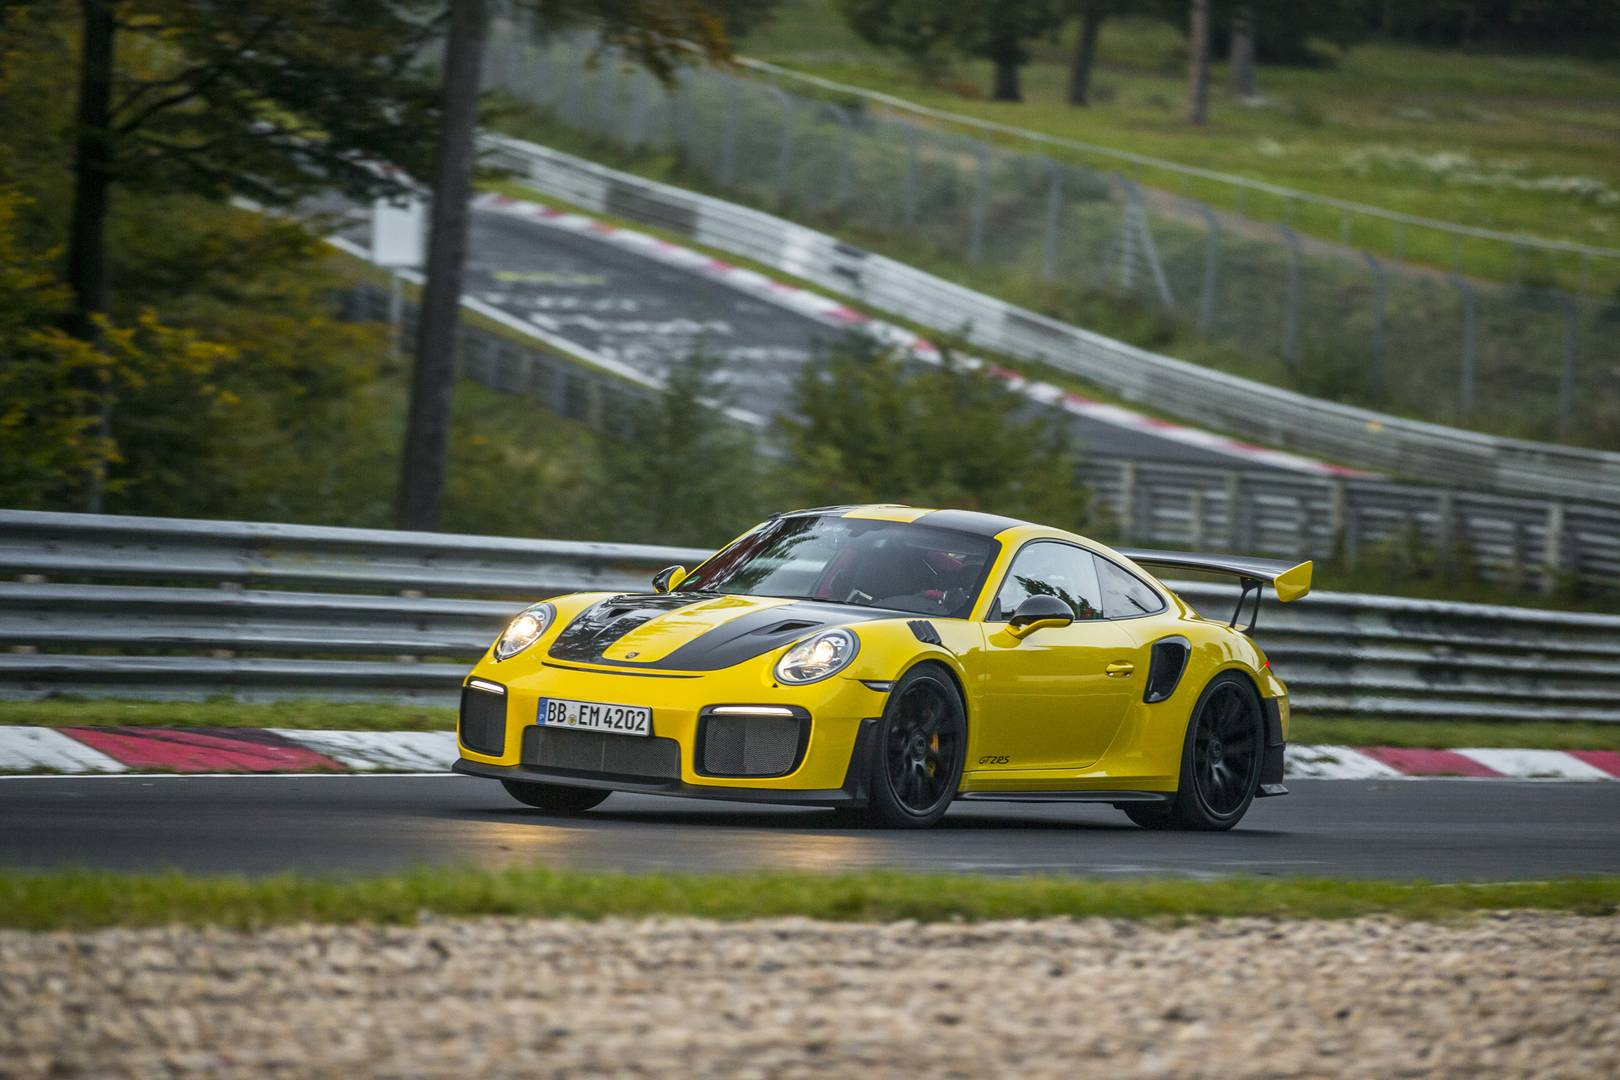 2018 Porsche 911 GT2 RS Shatters Nurburgring Record with a 6min 47.3s